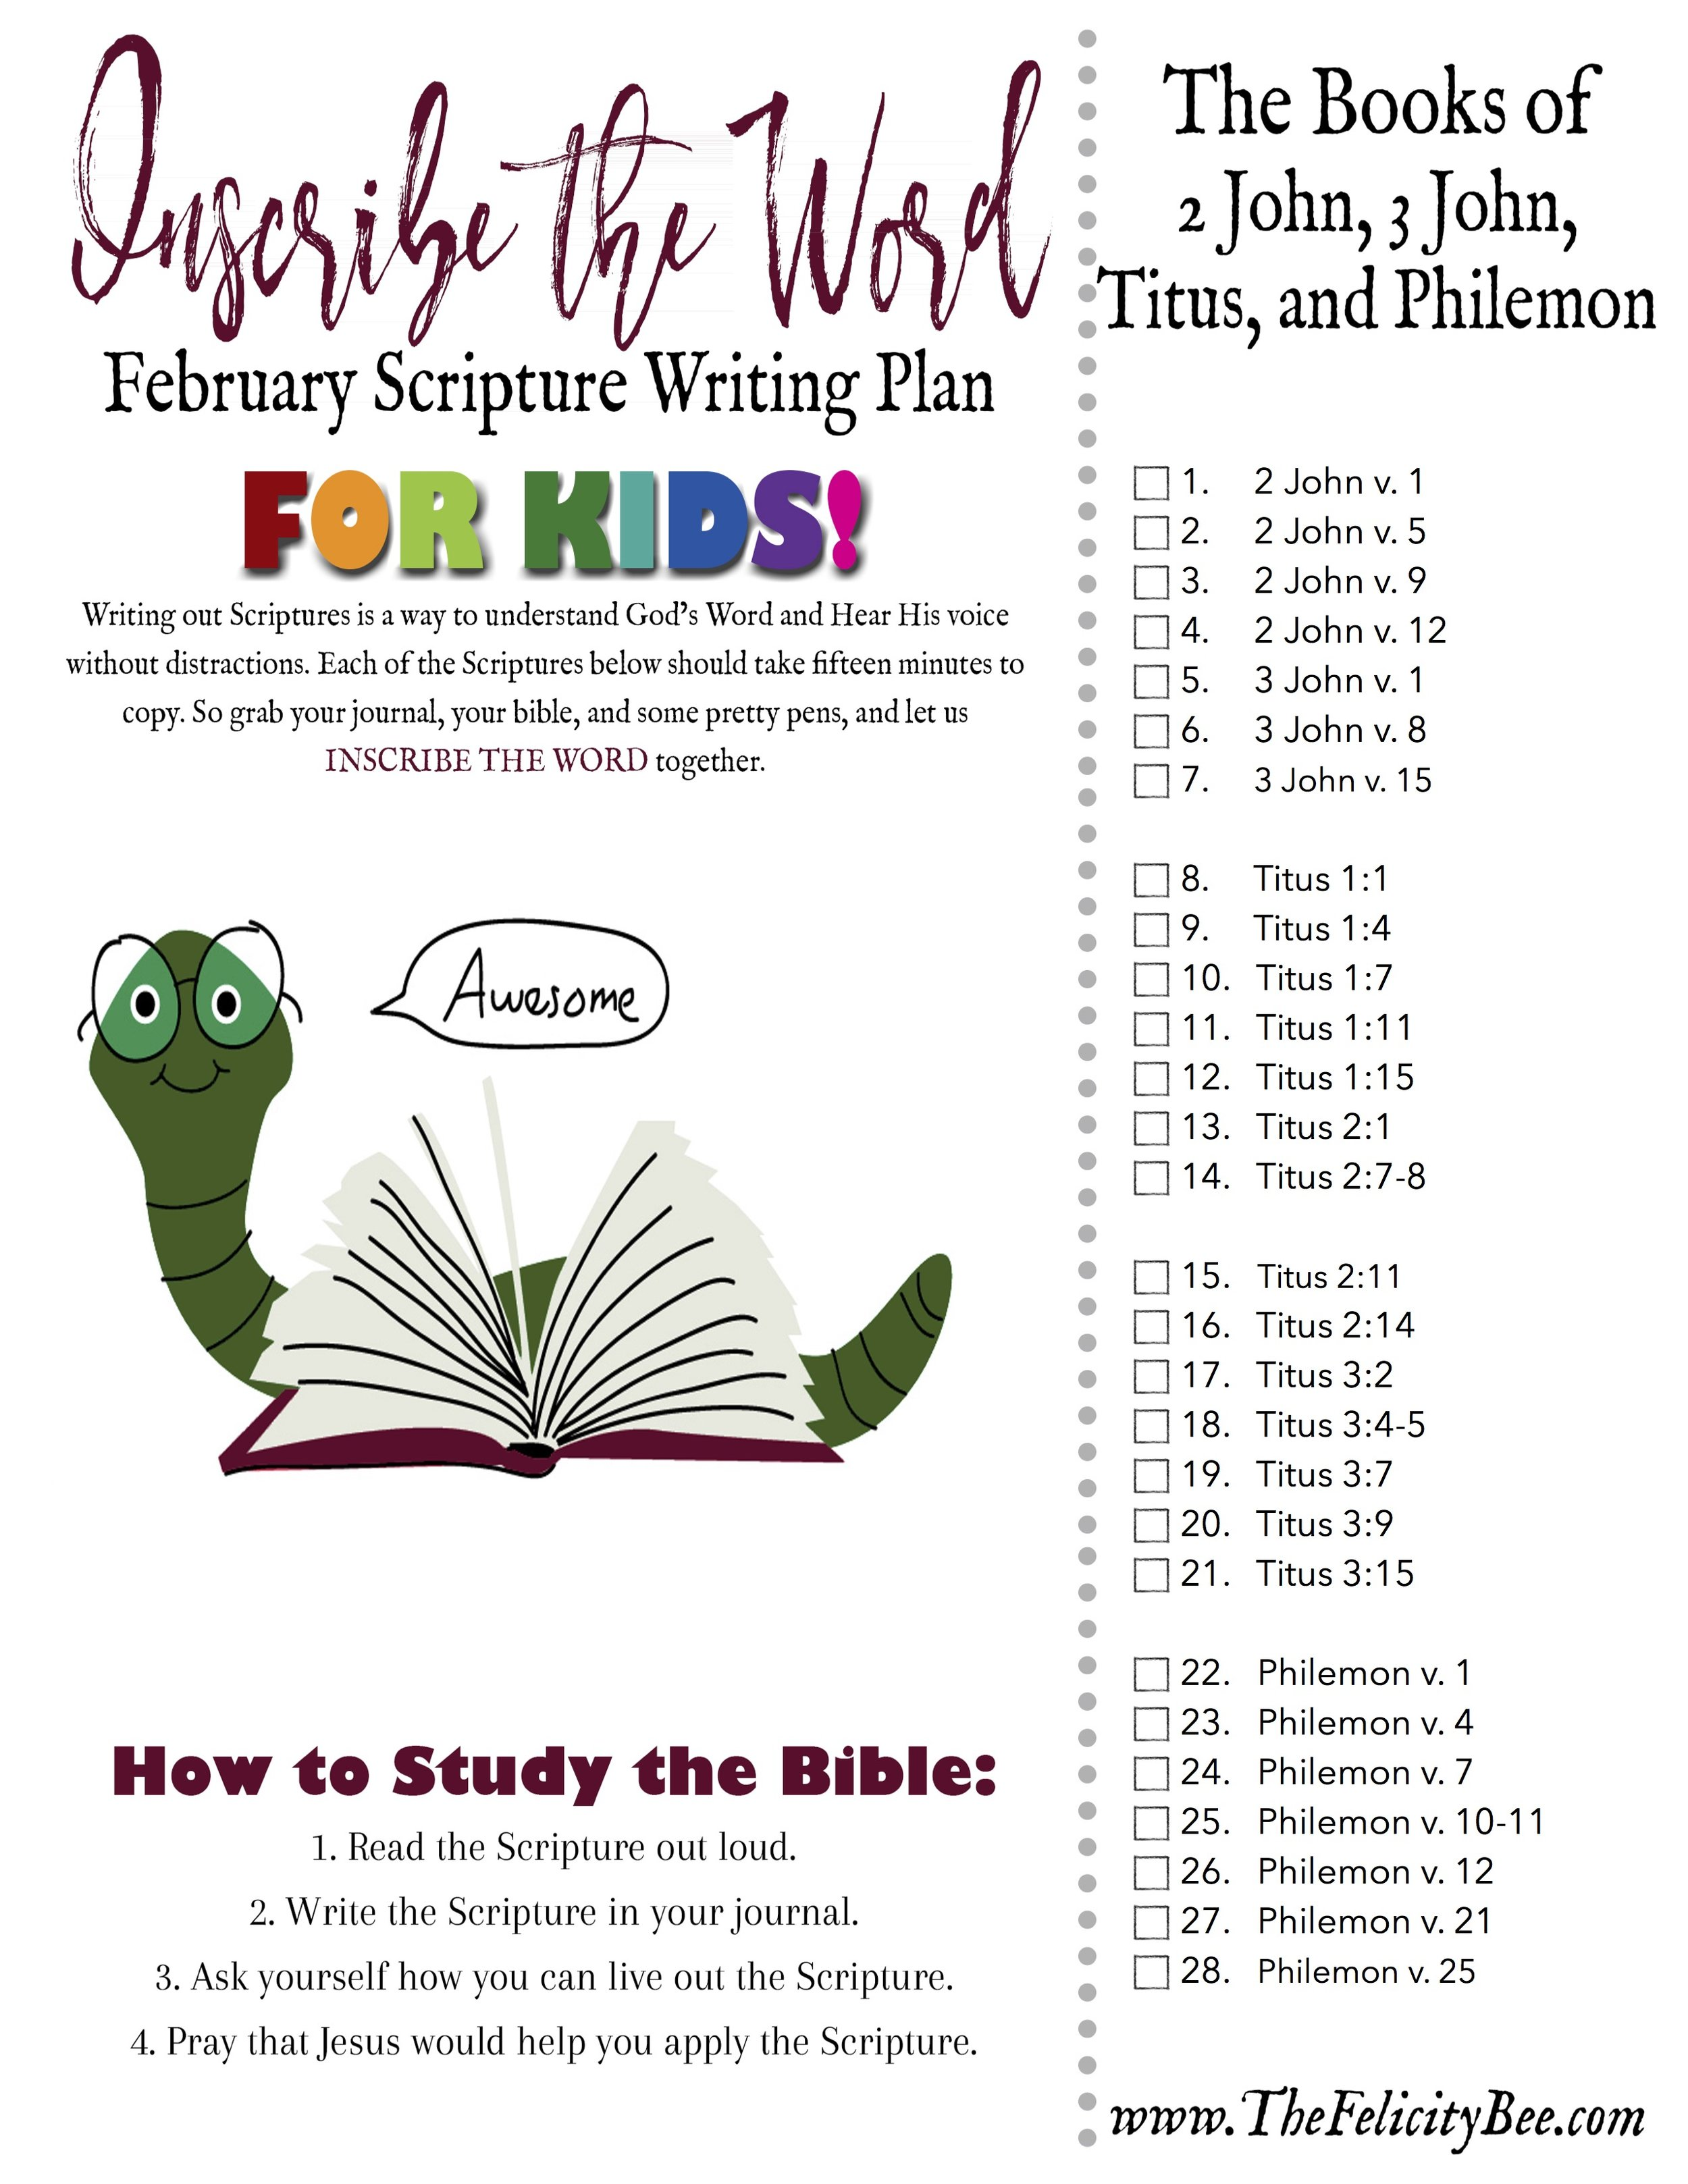 Click here  to download your february Scripture writing plan for kids!